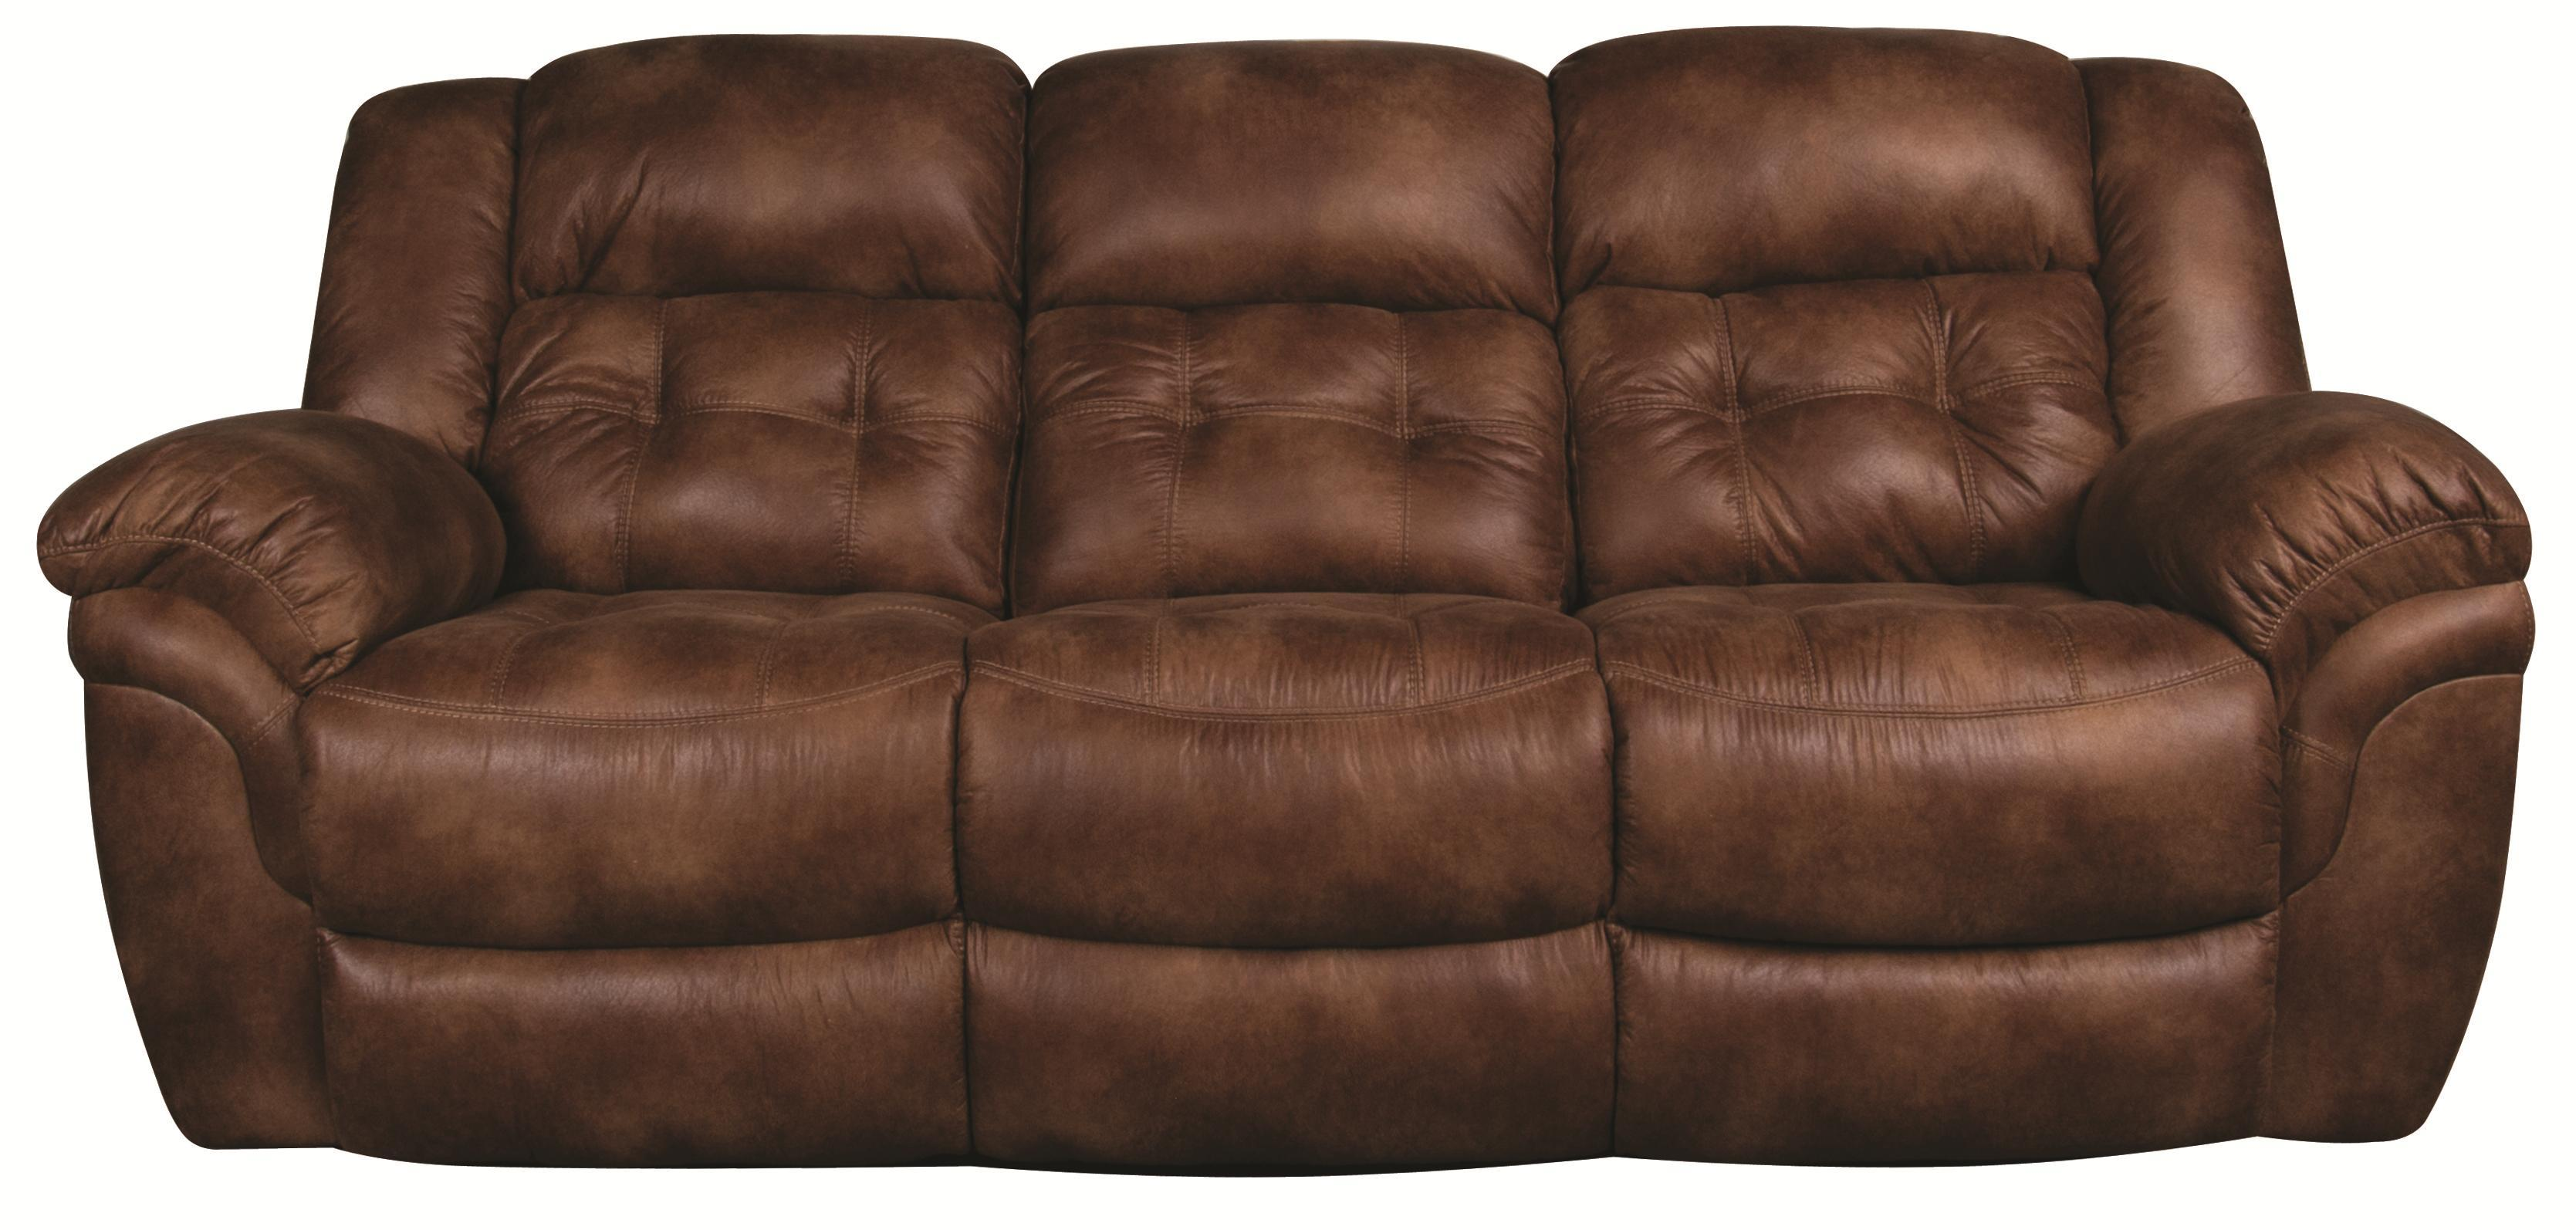 Morris Home Furnishings Elijah Elijah Reclining Sofa - Item Number: 102855078